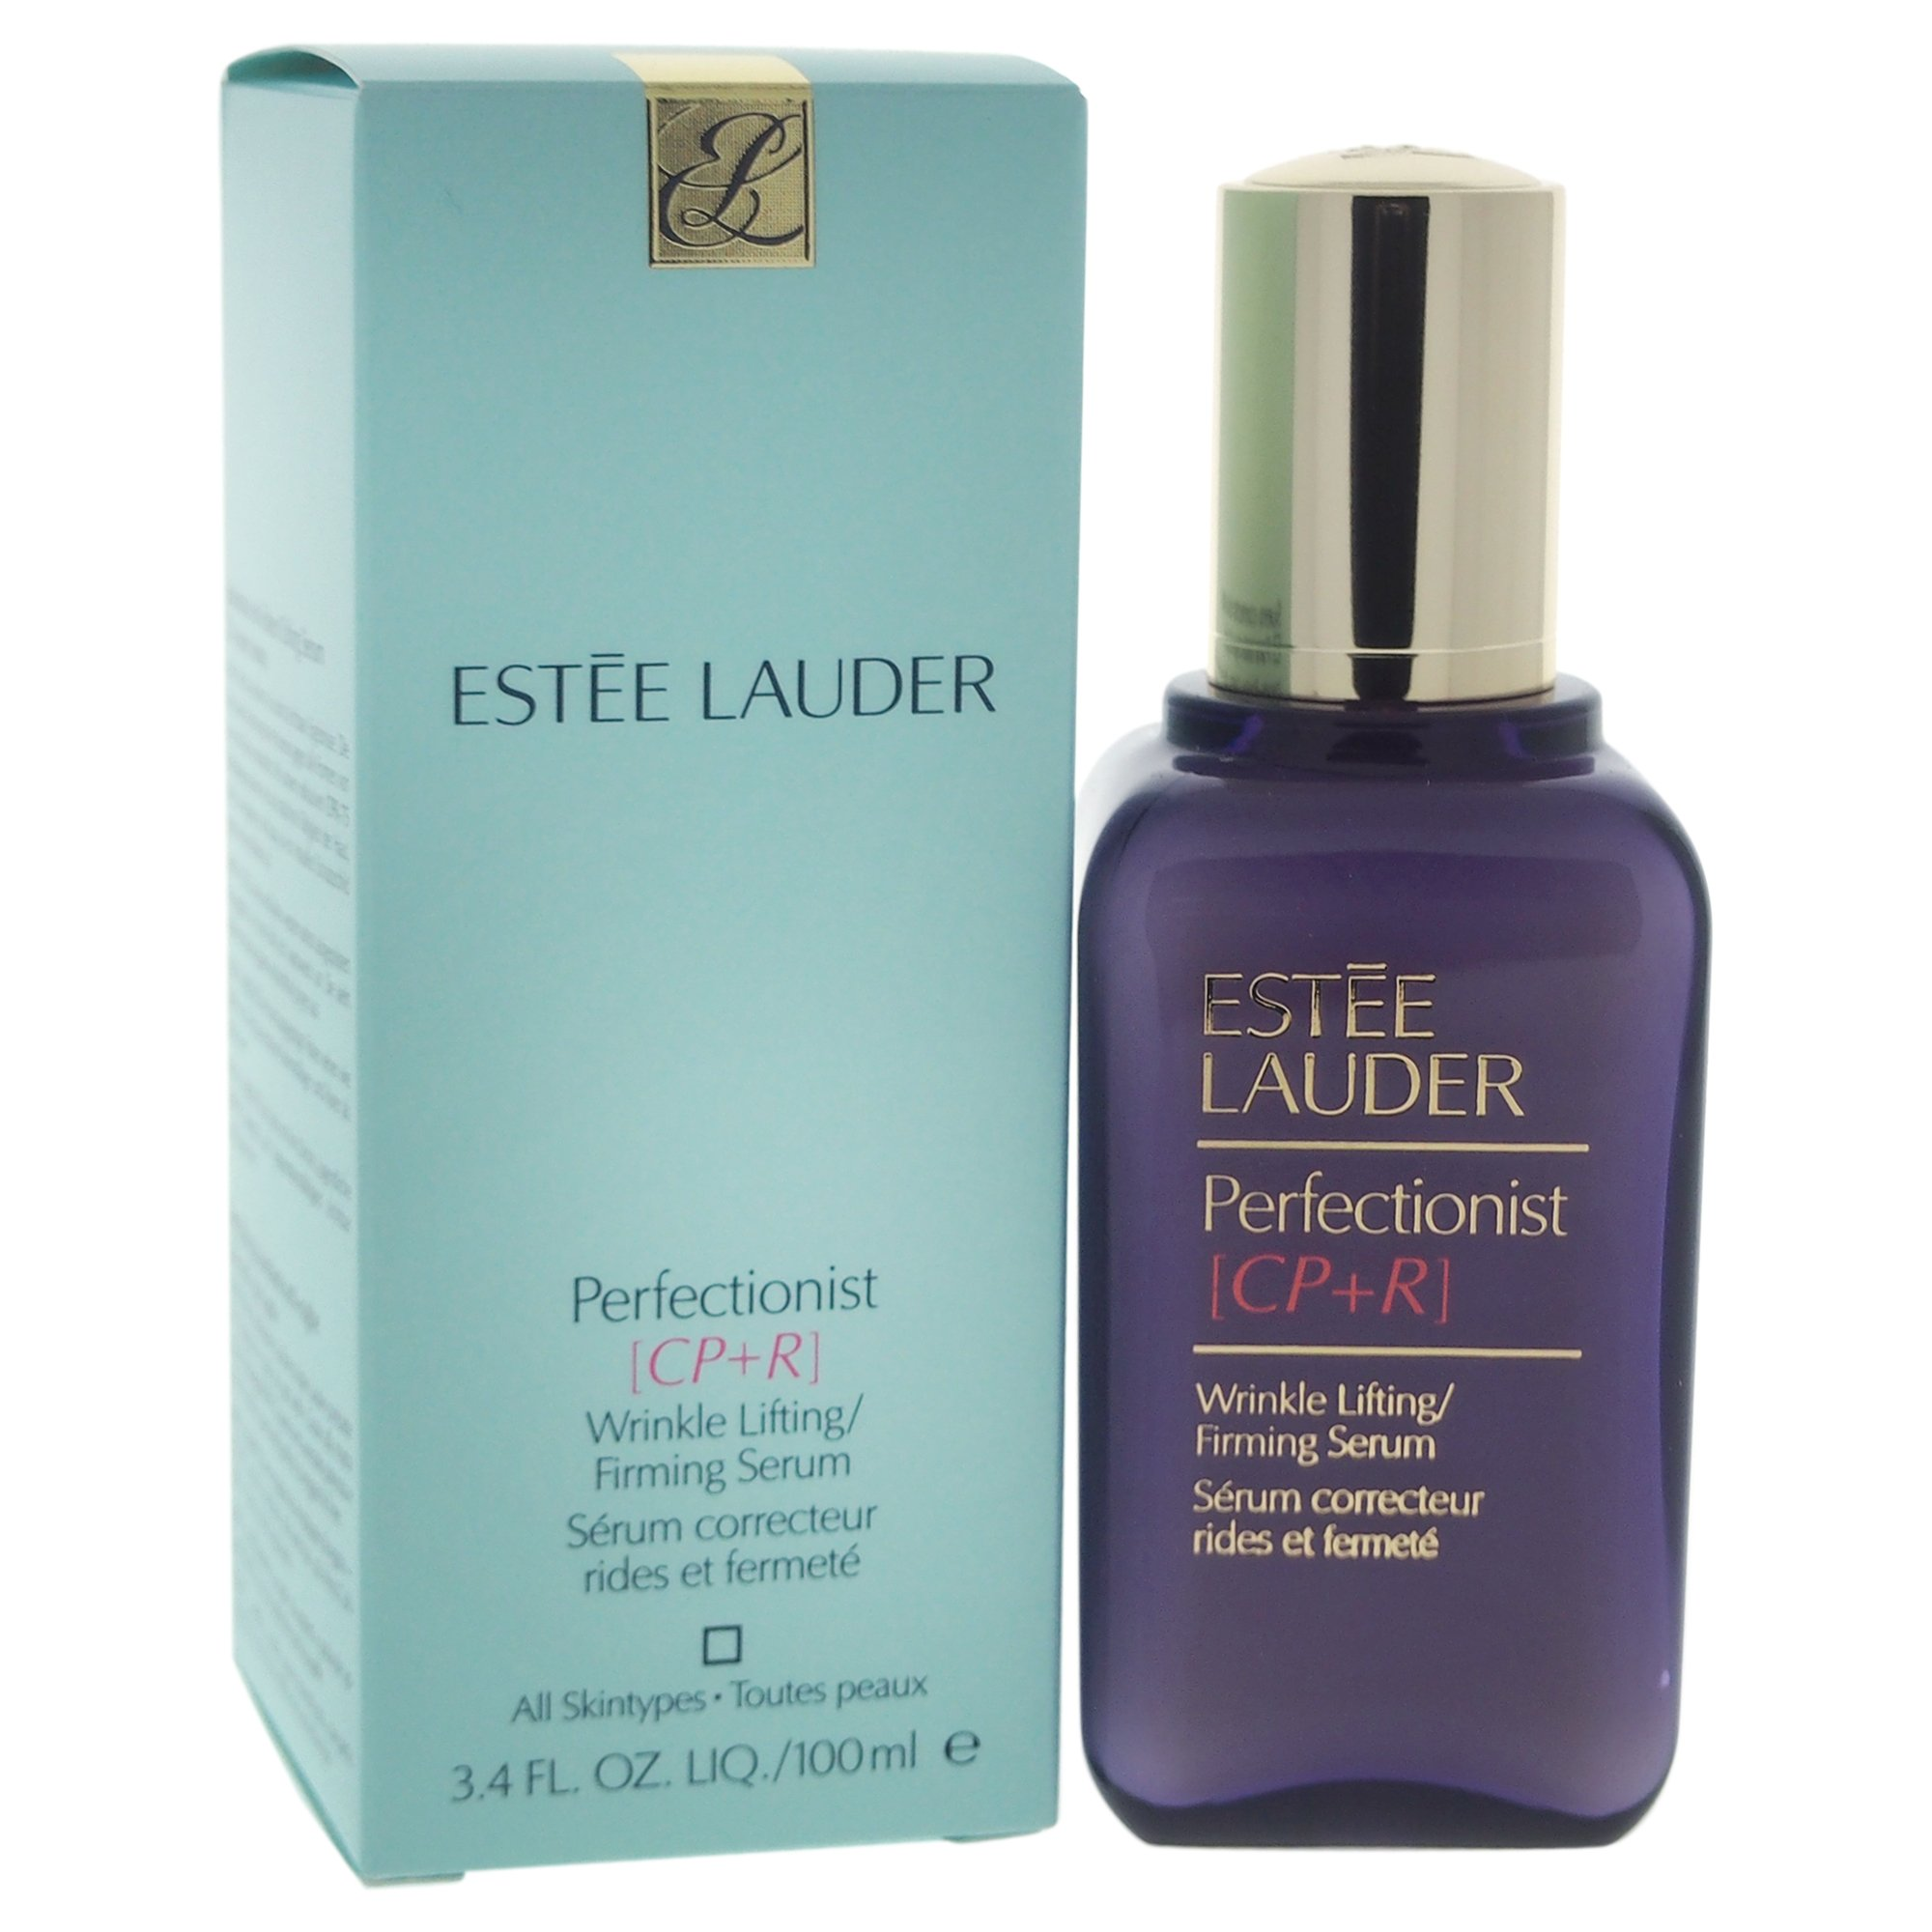 Estee lauder perfectionist wrinkle lifting firming serum cream for uni.